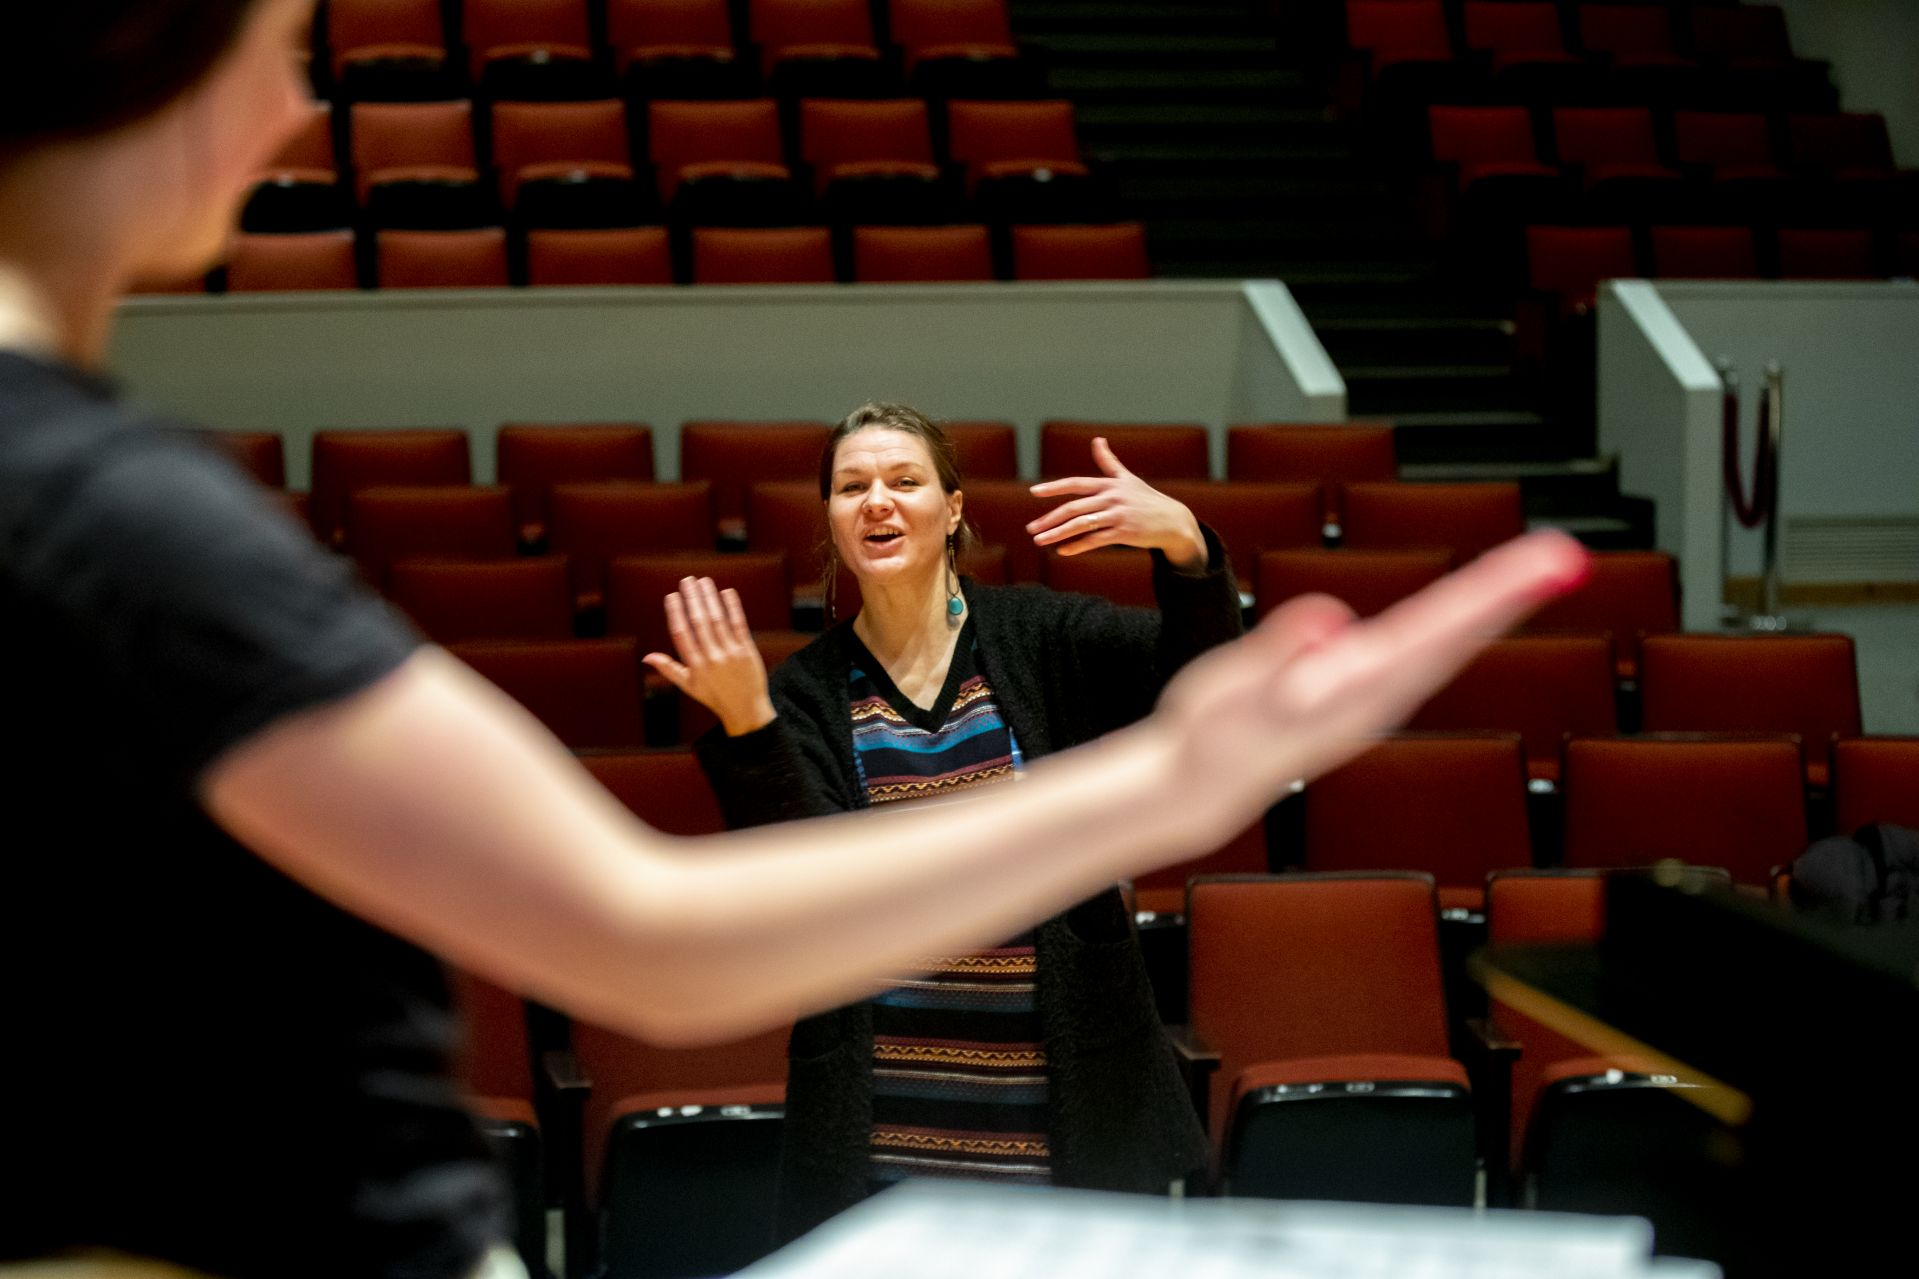 """Joëlle Morris models a gesture for """"The Willow Song"""" by Samuel Coleridge-Taylor as she prepares voice student Clara Porter '22 of Portland, Ore., for an Olin Arts Center voice recital. (Phyllis Graber Jensen/Bates College)"""